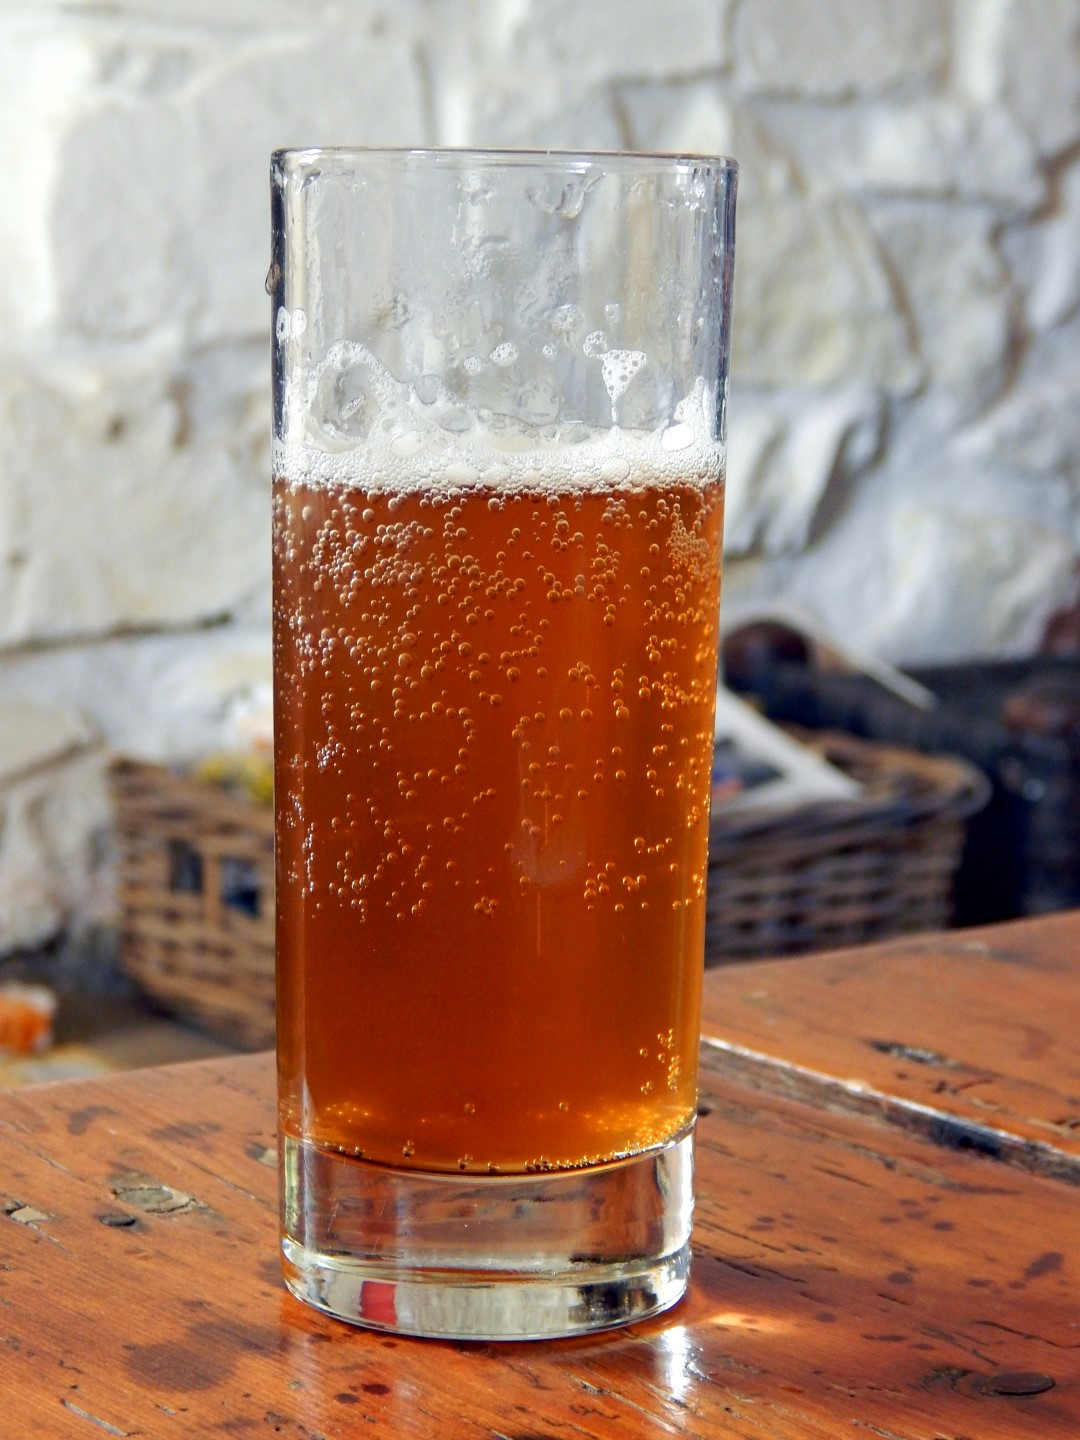 How to make homebrew without buying a kit